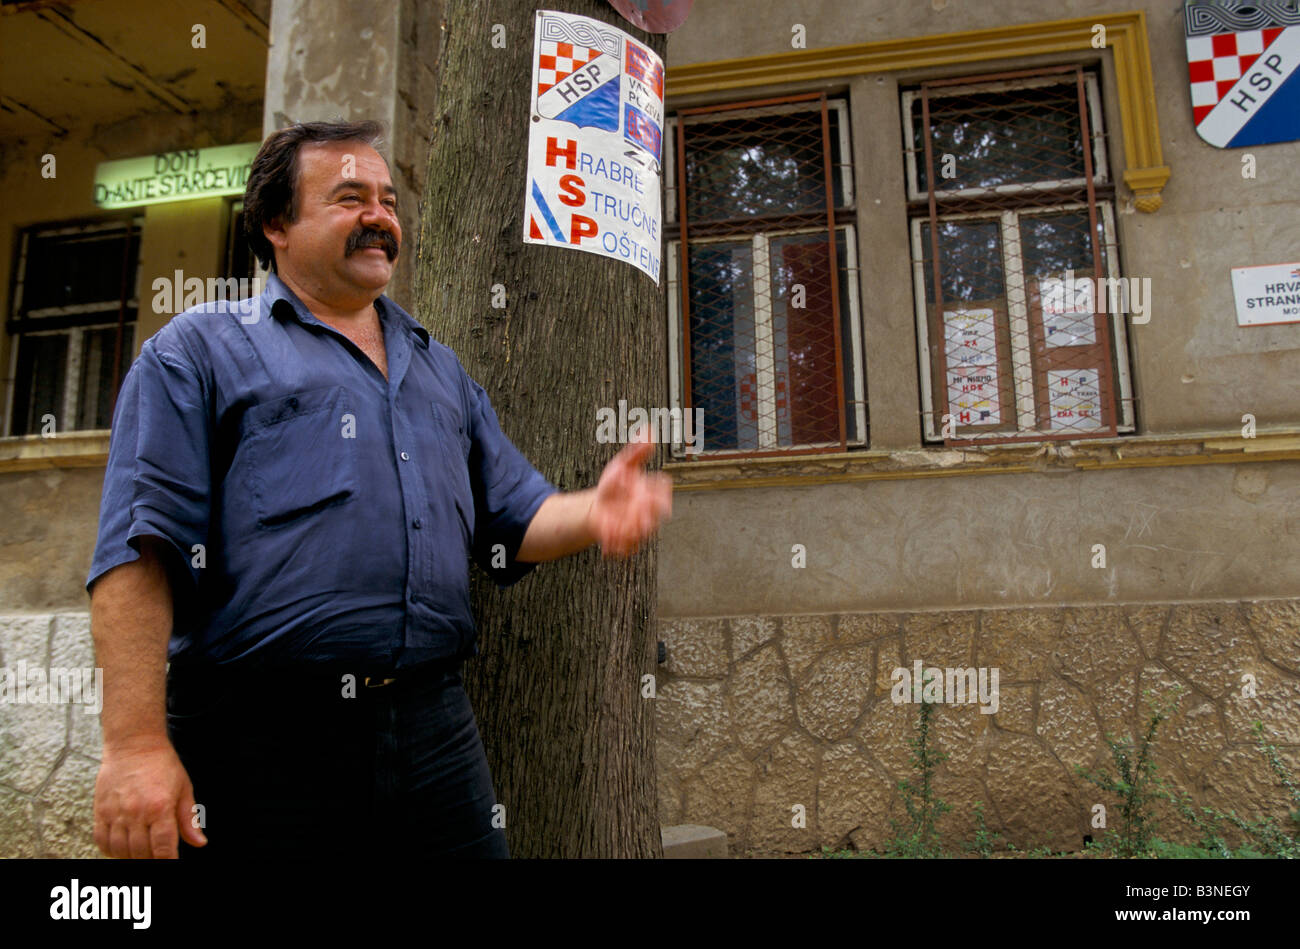 Mostar, june 1996', professor miljenko, president of the hsp, the croatian party of the right, 1996 - Stock Image